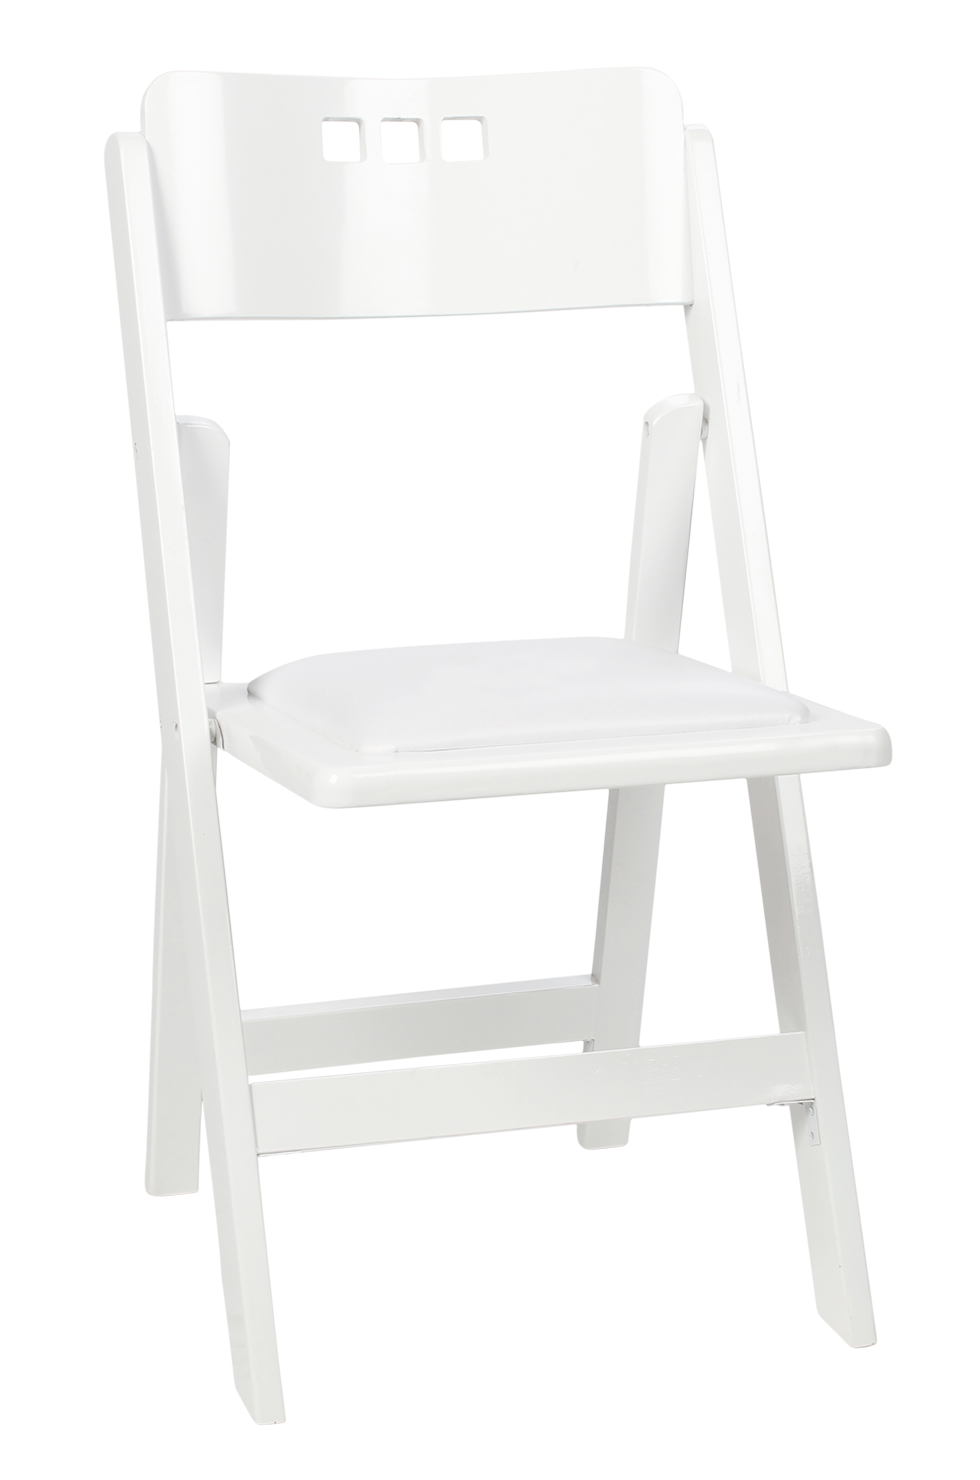 WHITE 3HOLE WOOD FOLDING CHAIR Rentals Bright Rentals